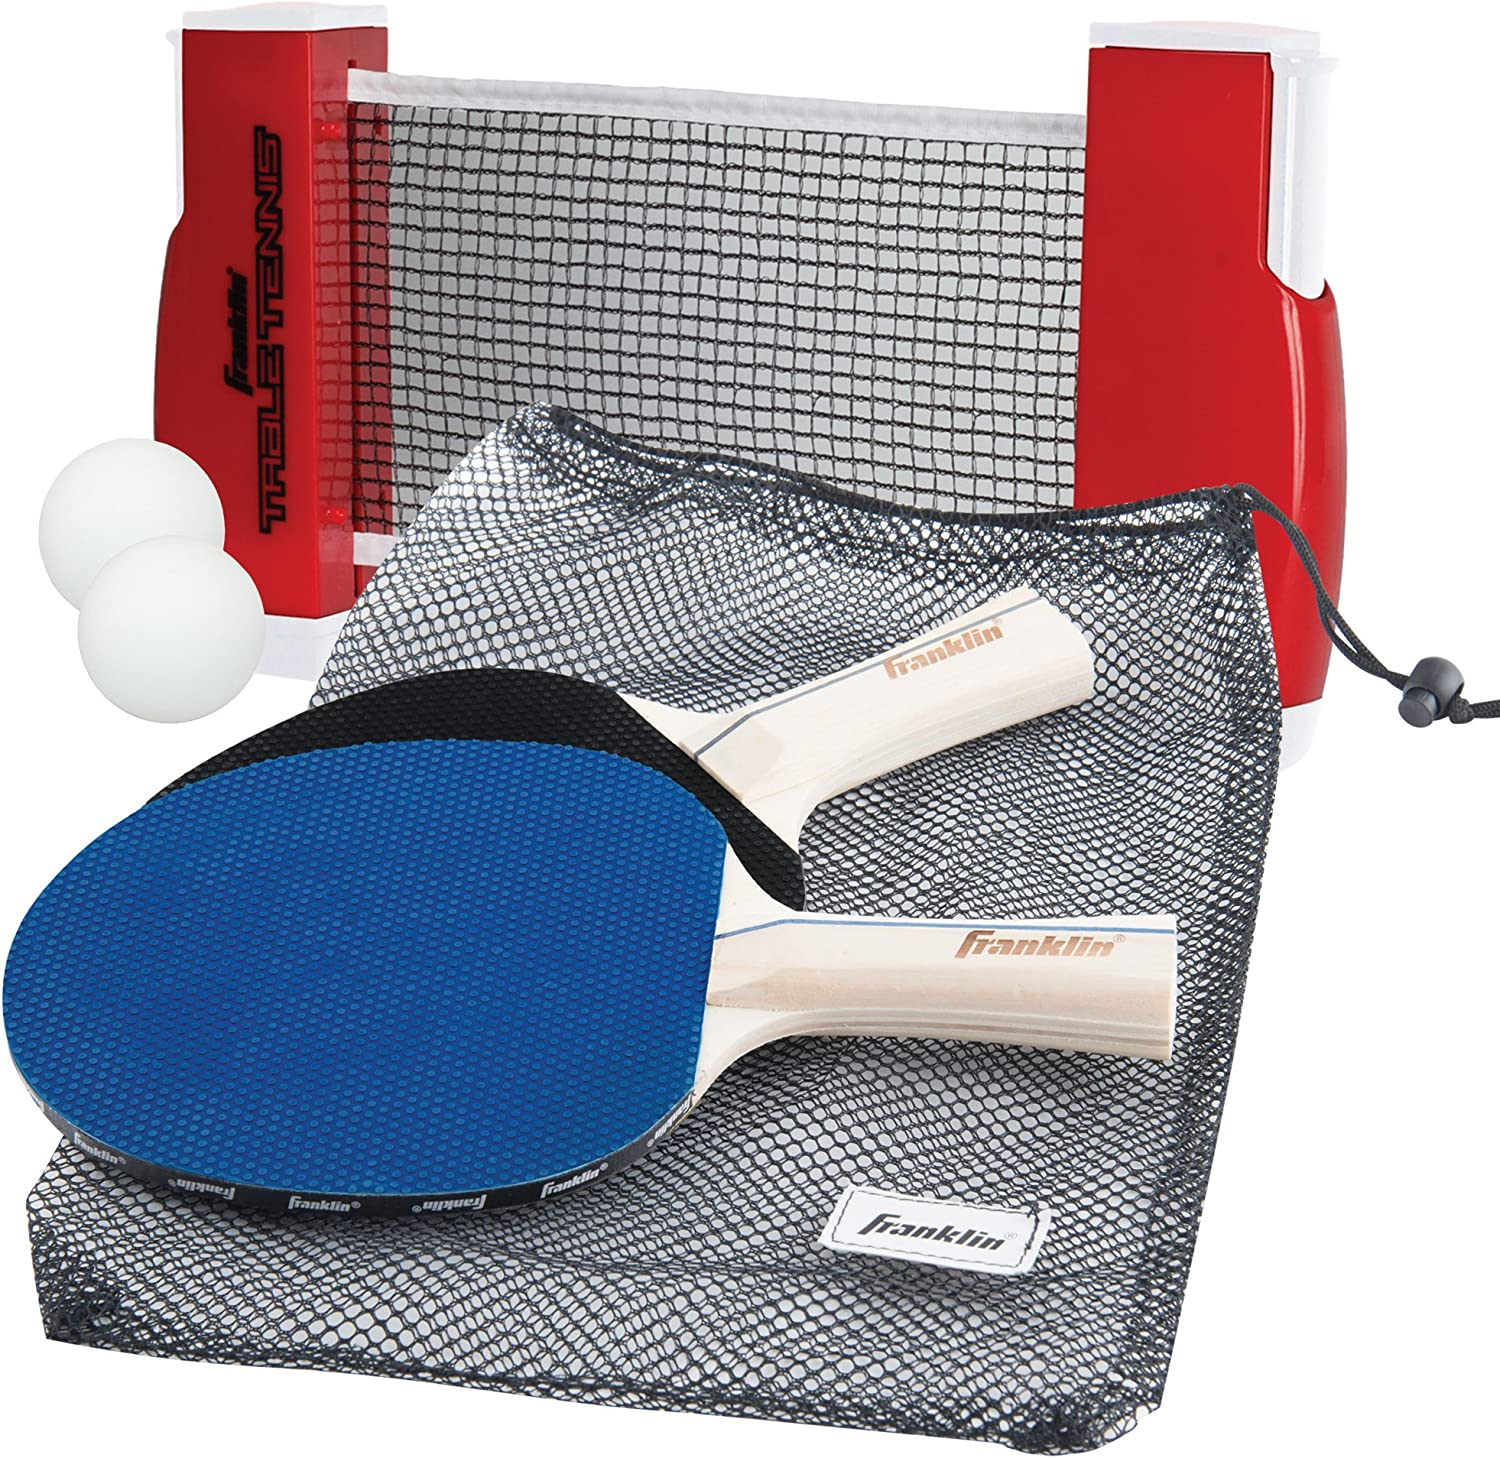 Franklin Sports Table Tennis To Go, Complete Portable Ping Pong Set : Table Tennis Sets : Sports & Outdoors